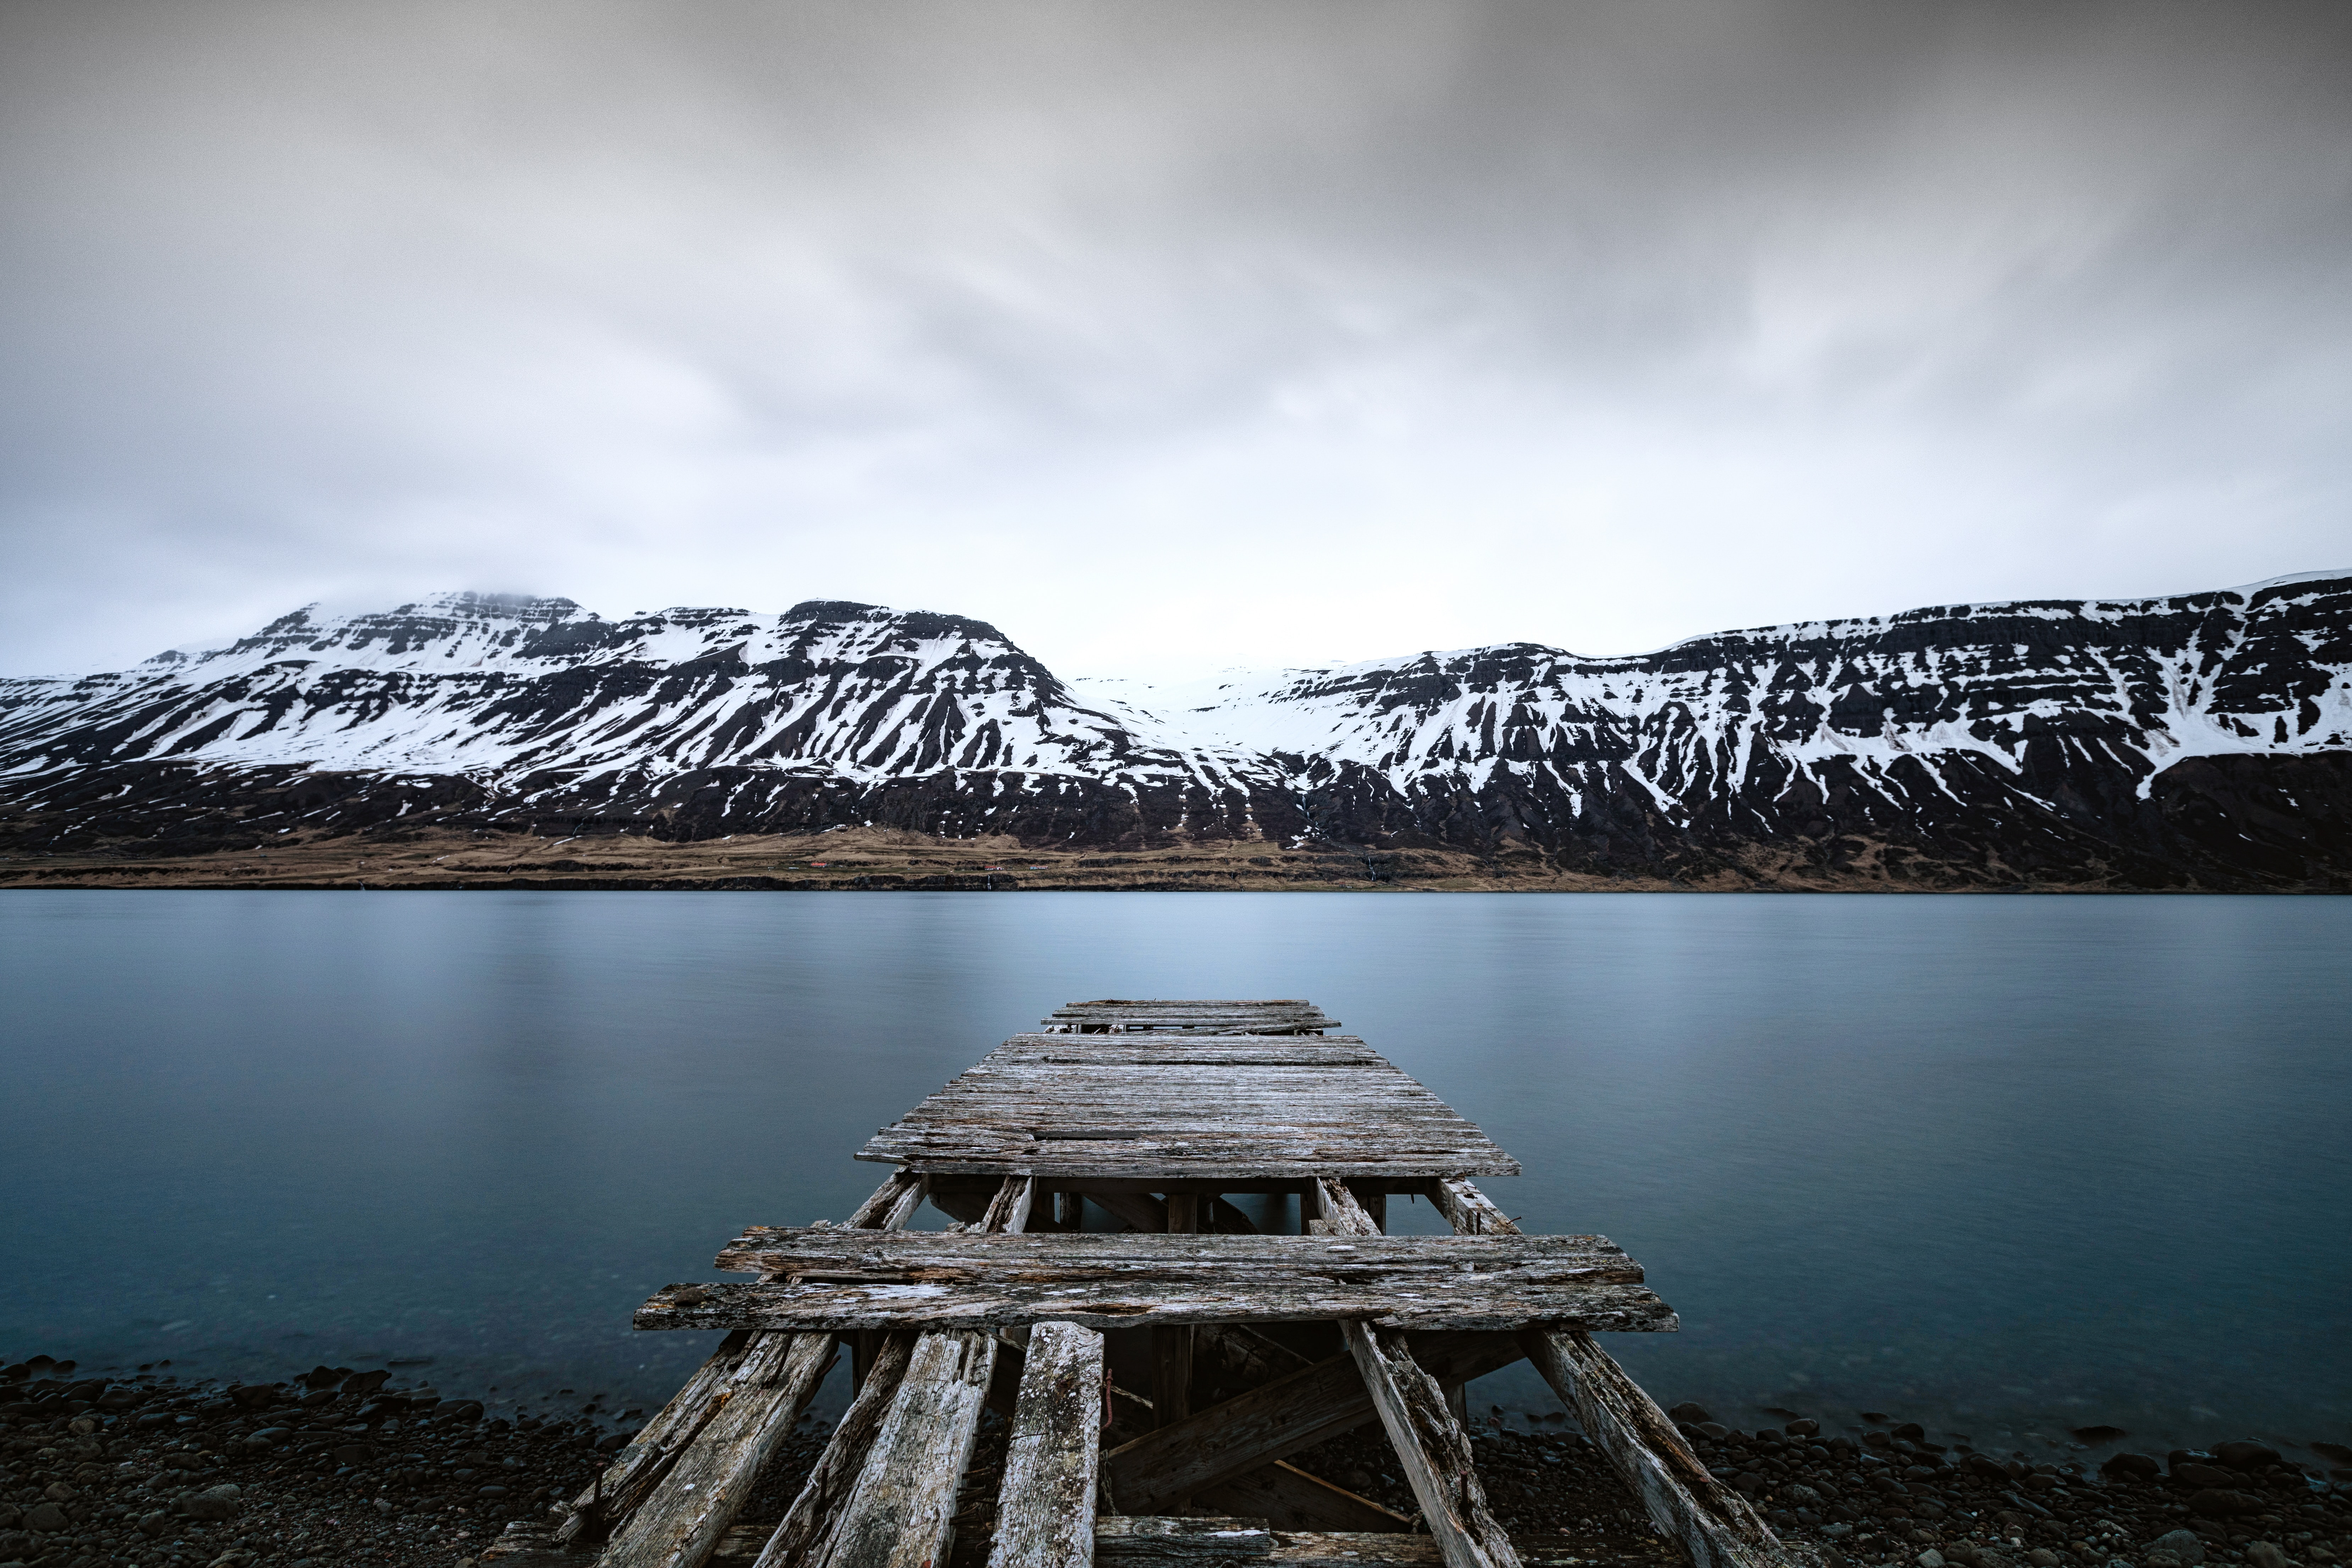 102339 download wallpaper Landscape, Nature, Mountains, Lake, Shore, Bank, Pier, Snow Covered, Snowbound screensavers and pictures for free